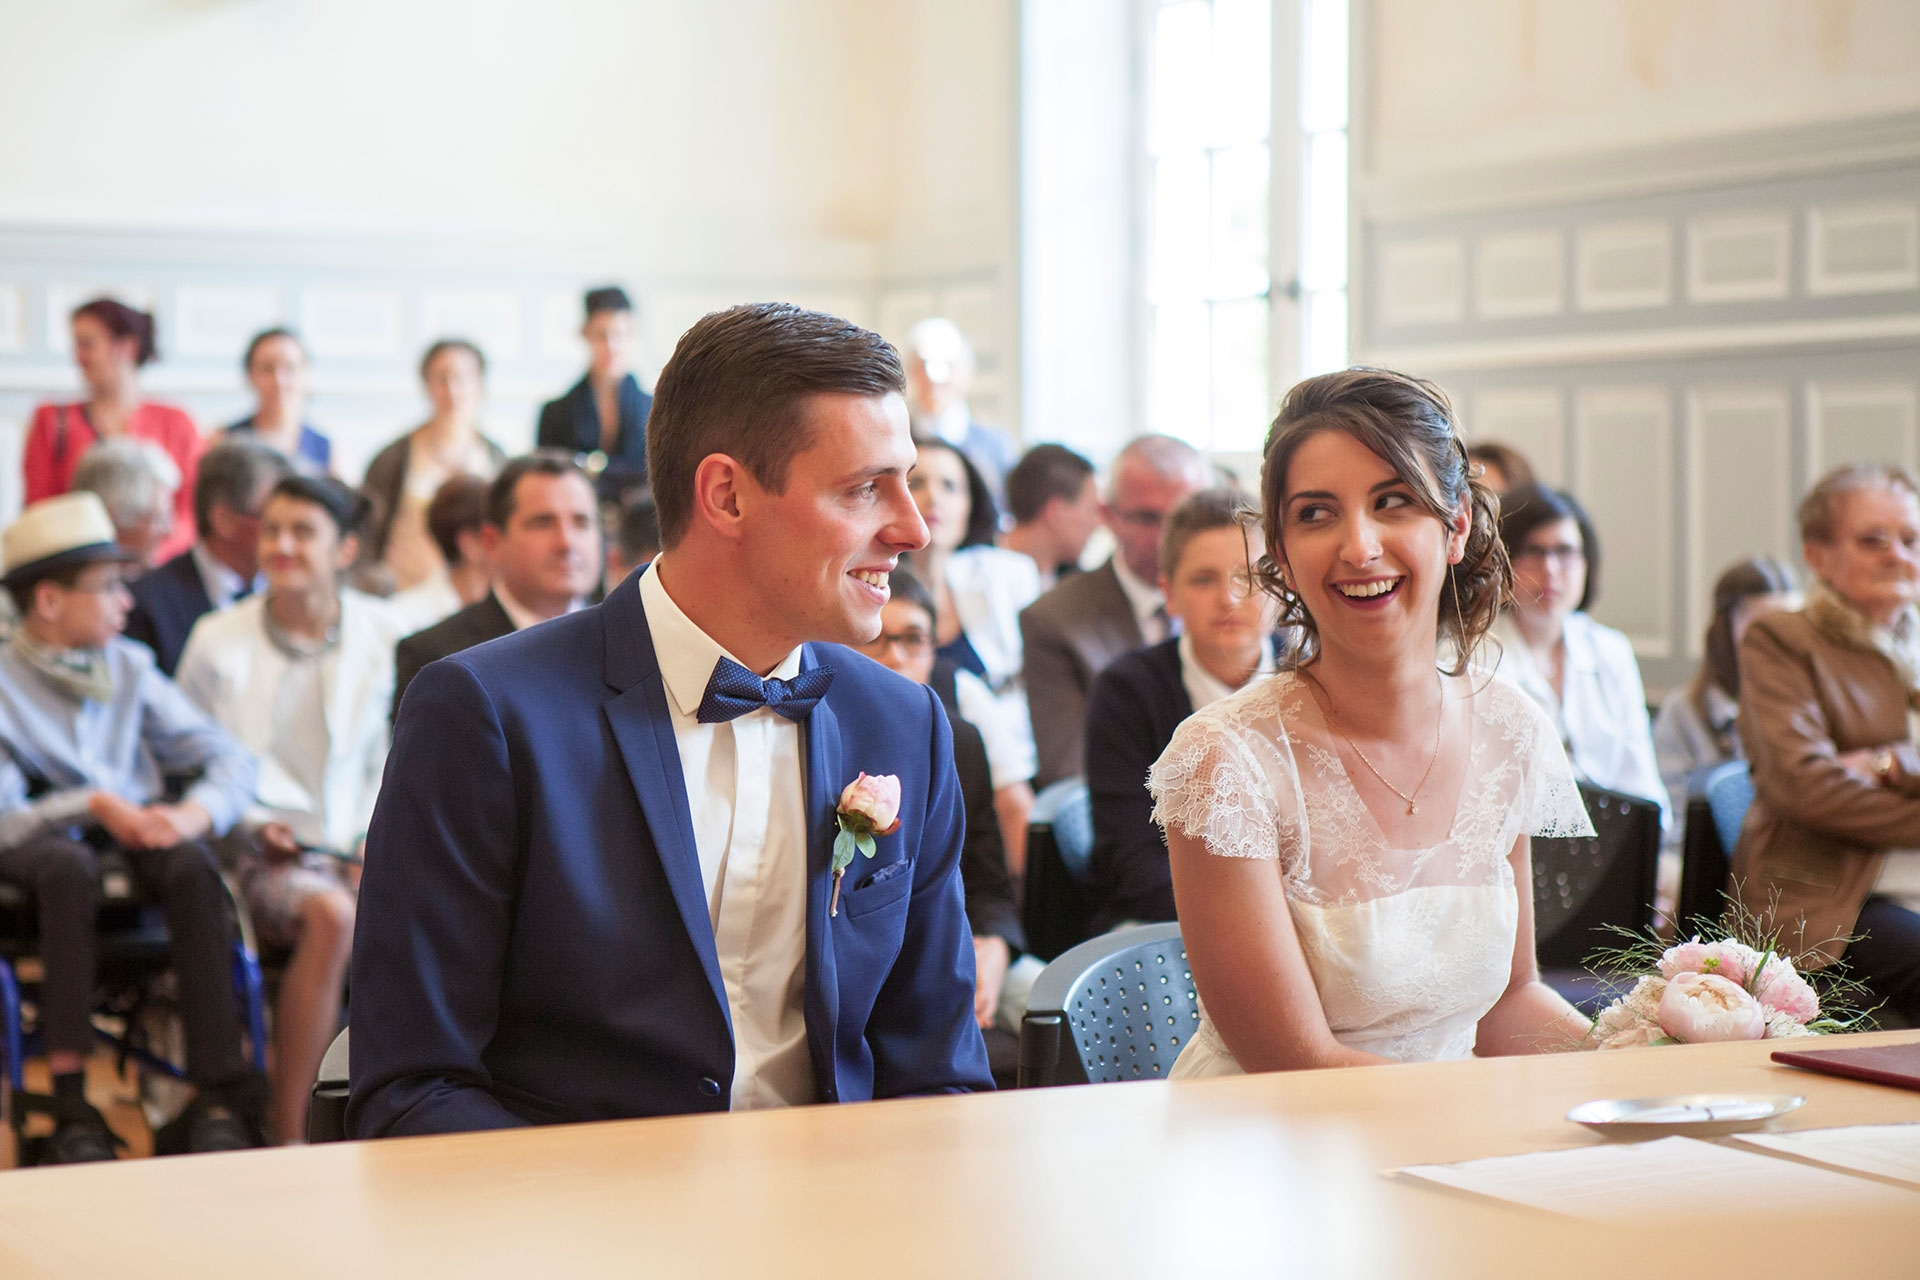 particuliers-evenements-mariages-oui-clementine&alexandre-20